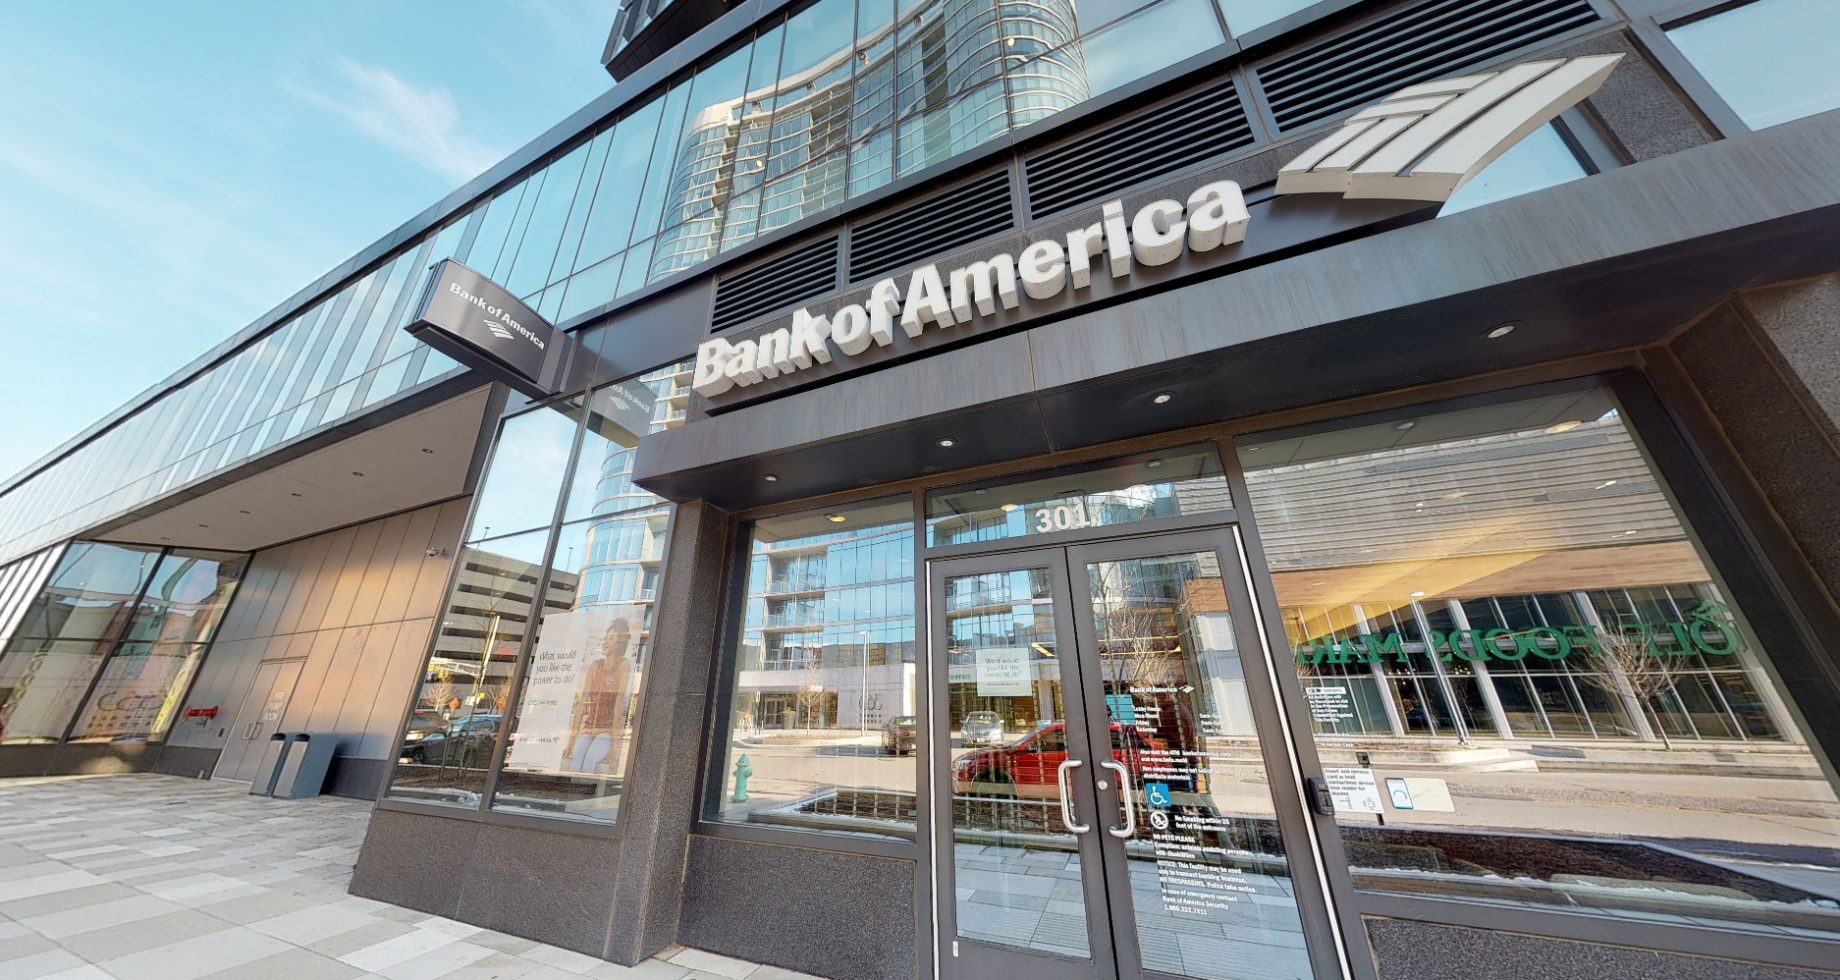 Bank of America financial center with walk-up ATM | 301 E Market St STE 116, Indianapolis, IN 46204